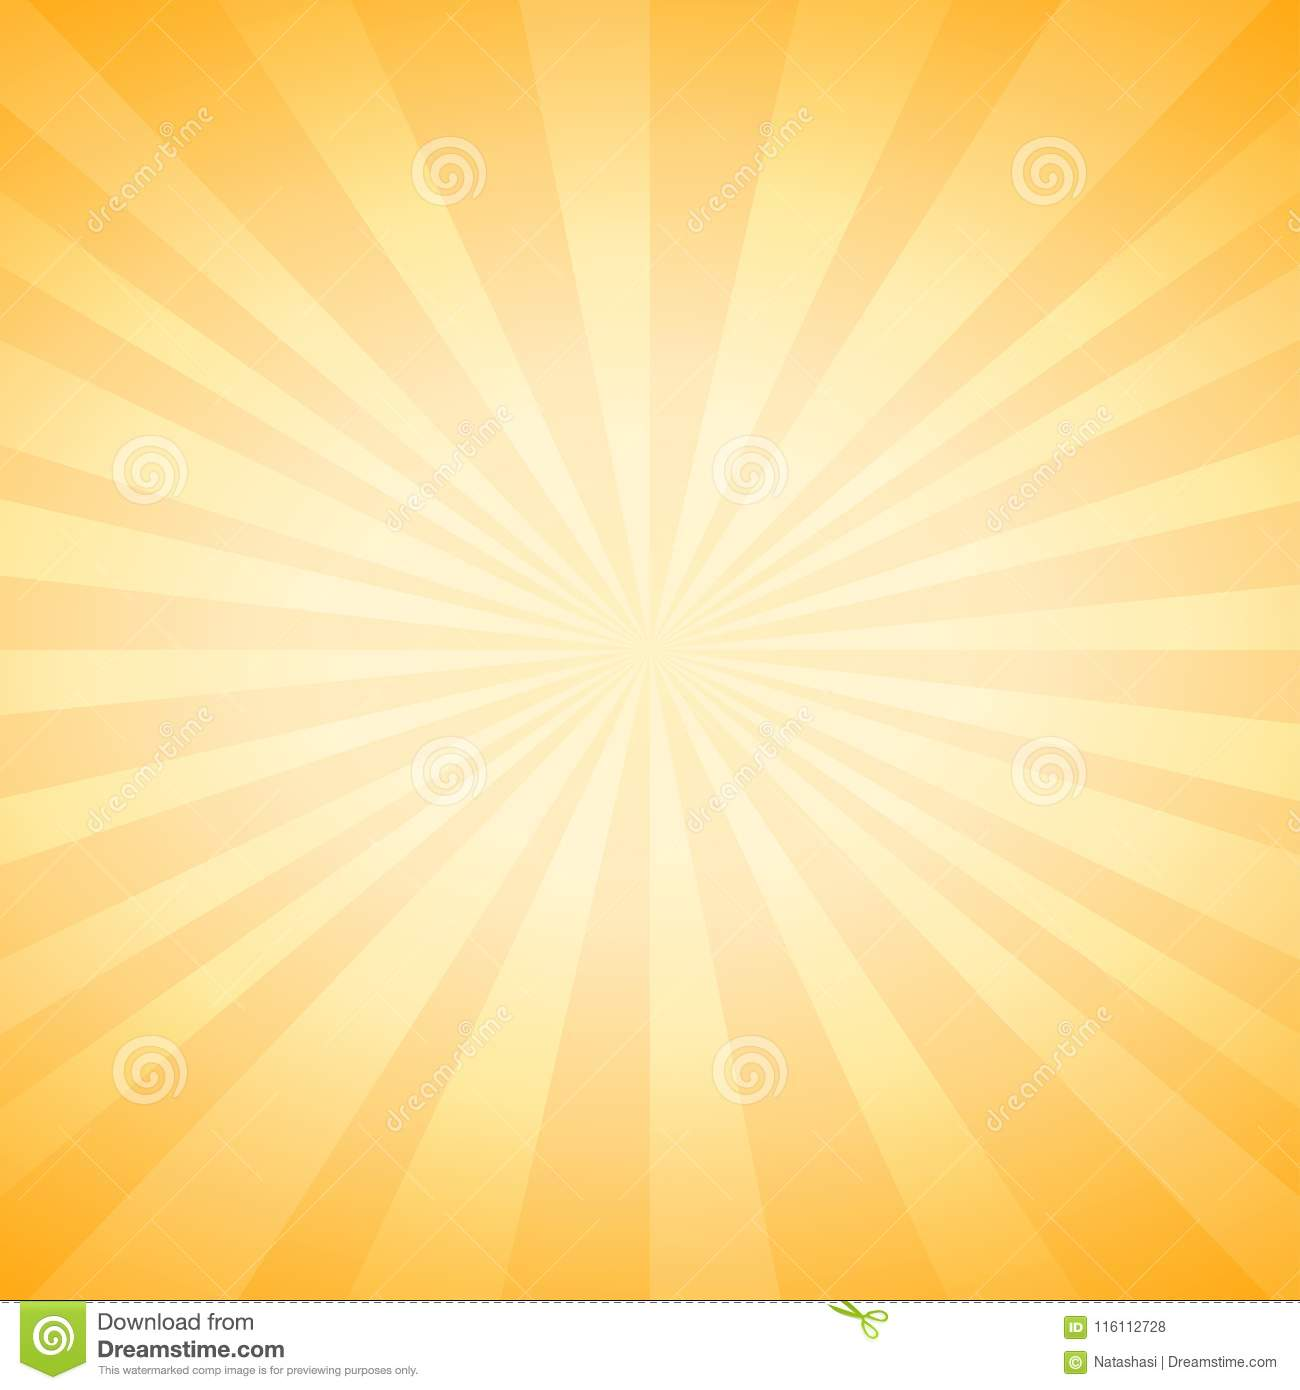 Abstract soft Yellow rays background. Vector